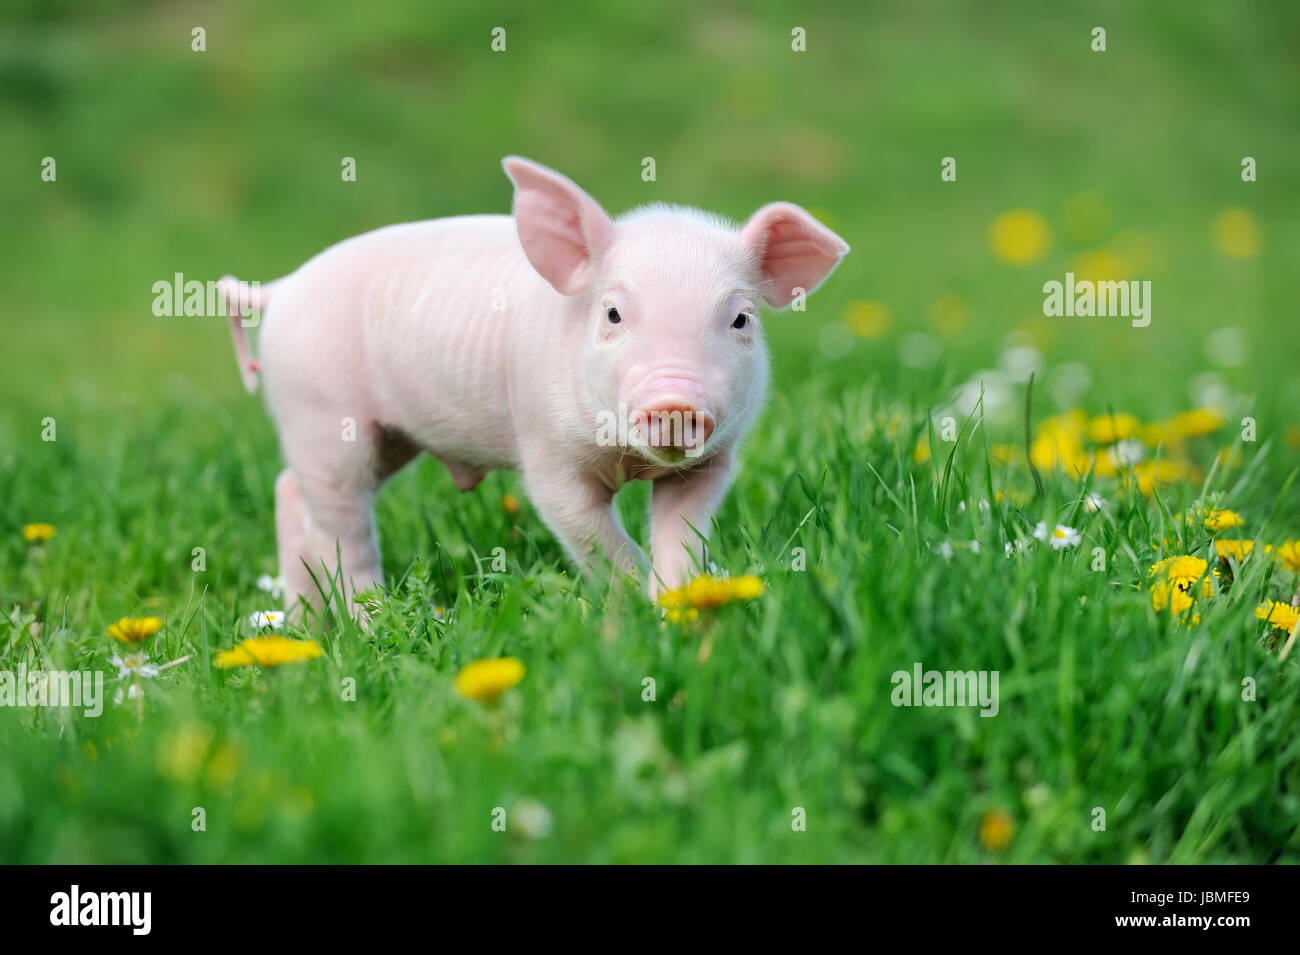 Young funny pig on a spring green grass - Stock Image